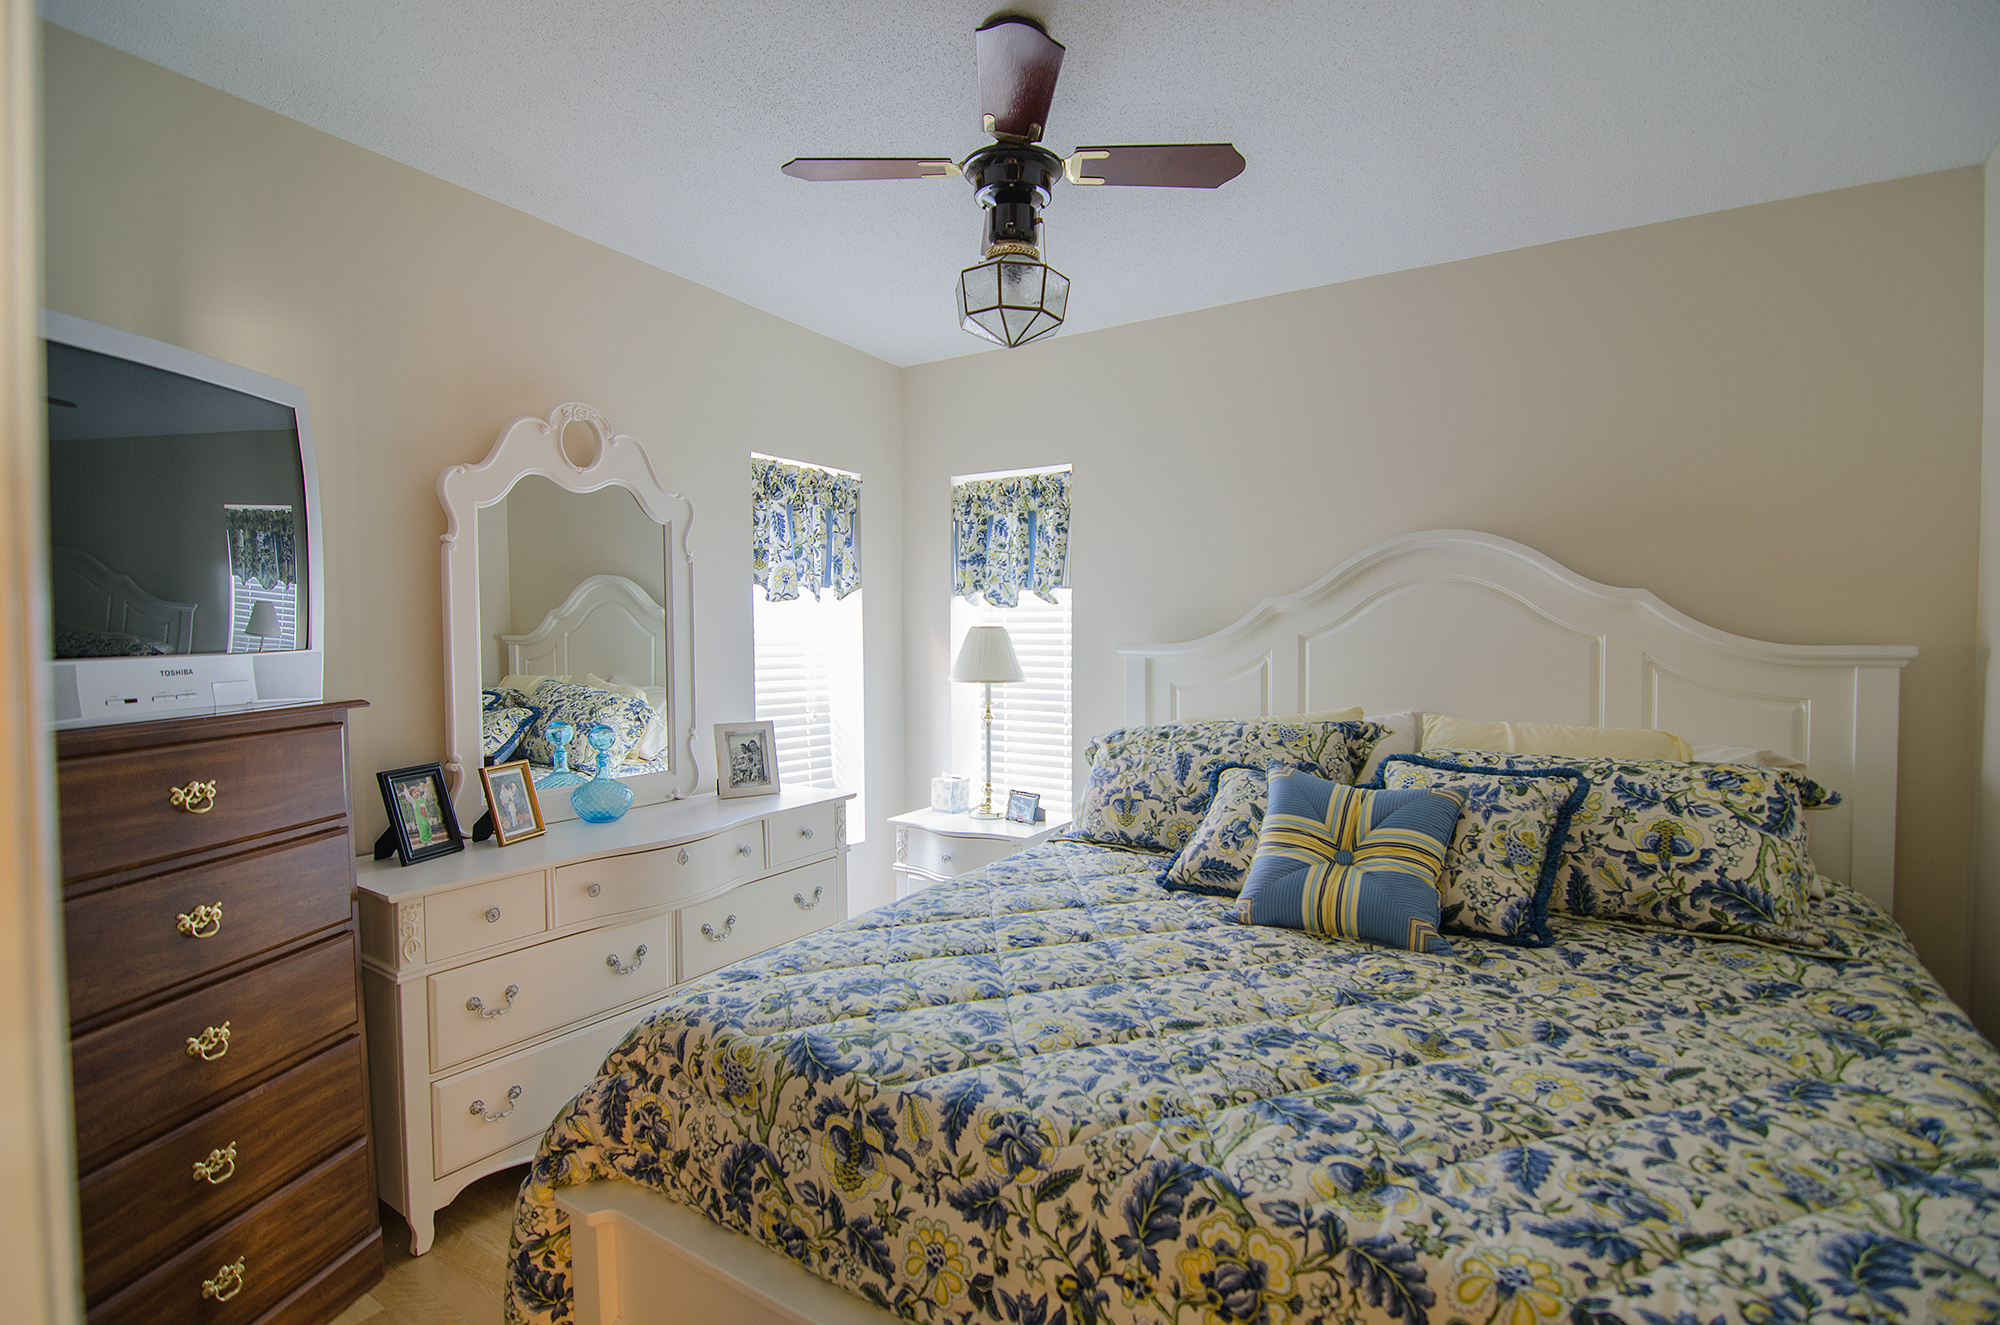 3riversrealty,spring-creek,watefront,south-georgia,lake-seminole,vacation-home,bedroom2,mills-brock.jpg